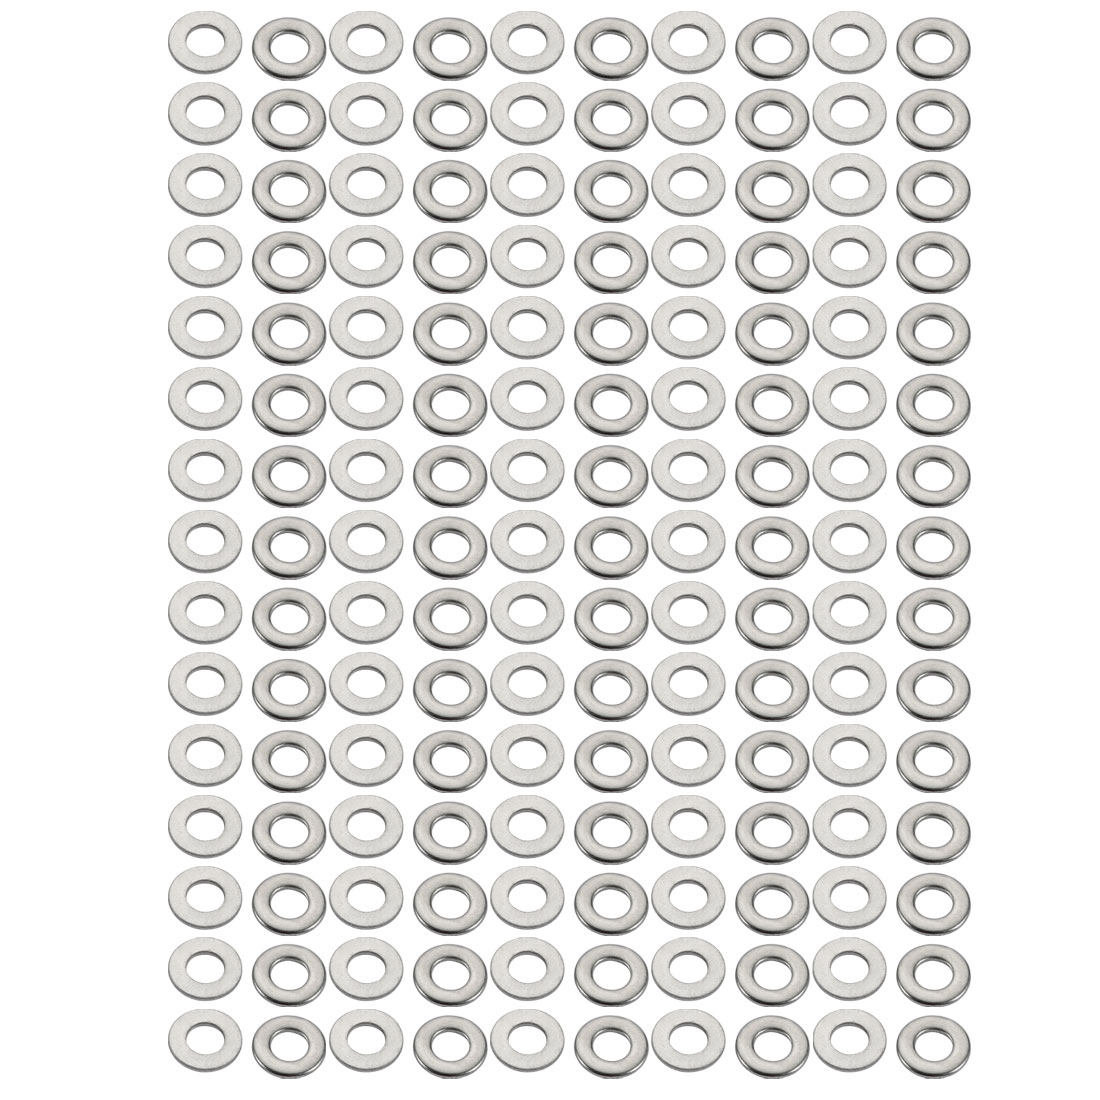 M4x9mmx0.8mm DIN125 316 Stainless Steel Flat Washer Silver Tone 150pcs